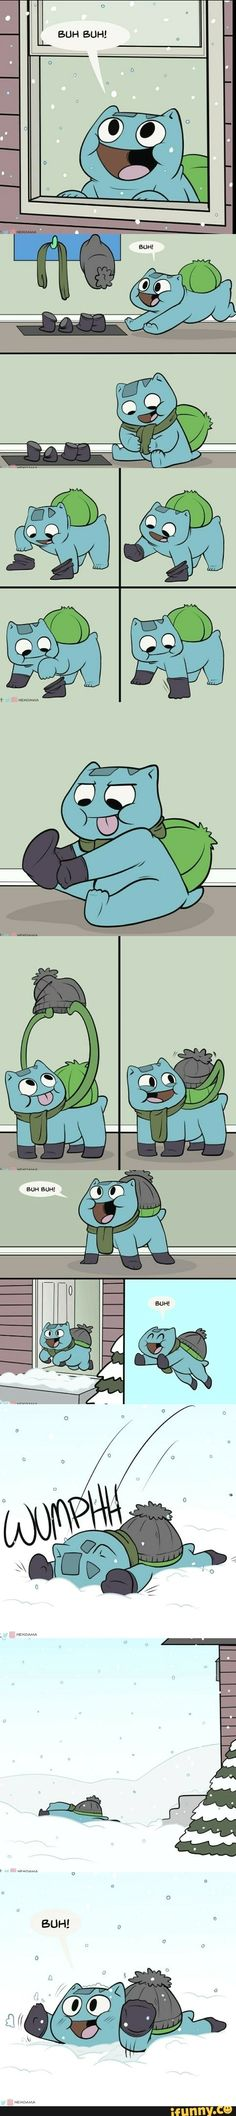 Bulbasaur is just the cutest Pokemon ever! Pokemon Comics, Pokemon Funny, Pokemon Memes, Pokemon Fan Art, Pokemon Go, Pokemon Bulbasaur, Pikachu Pikachu, Digimon, Pokemon Mignon